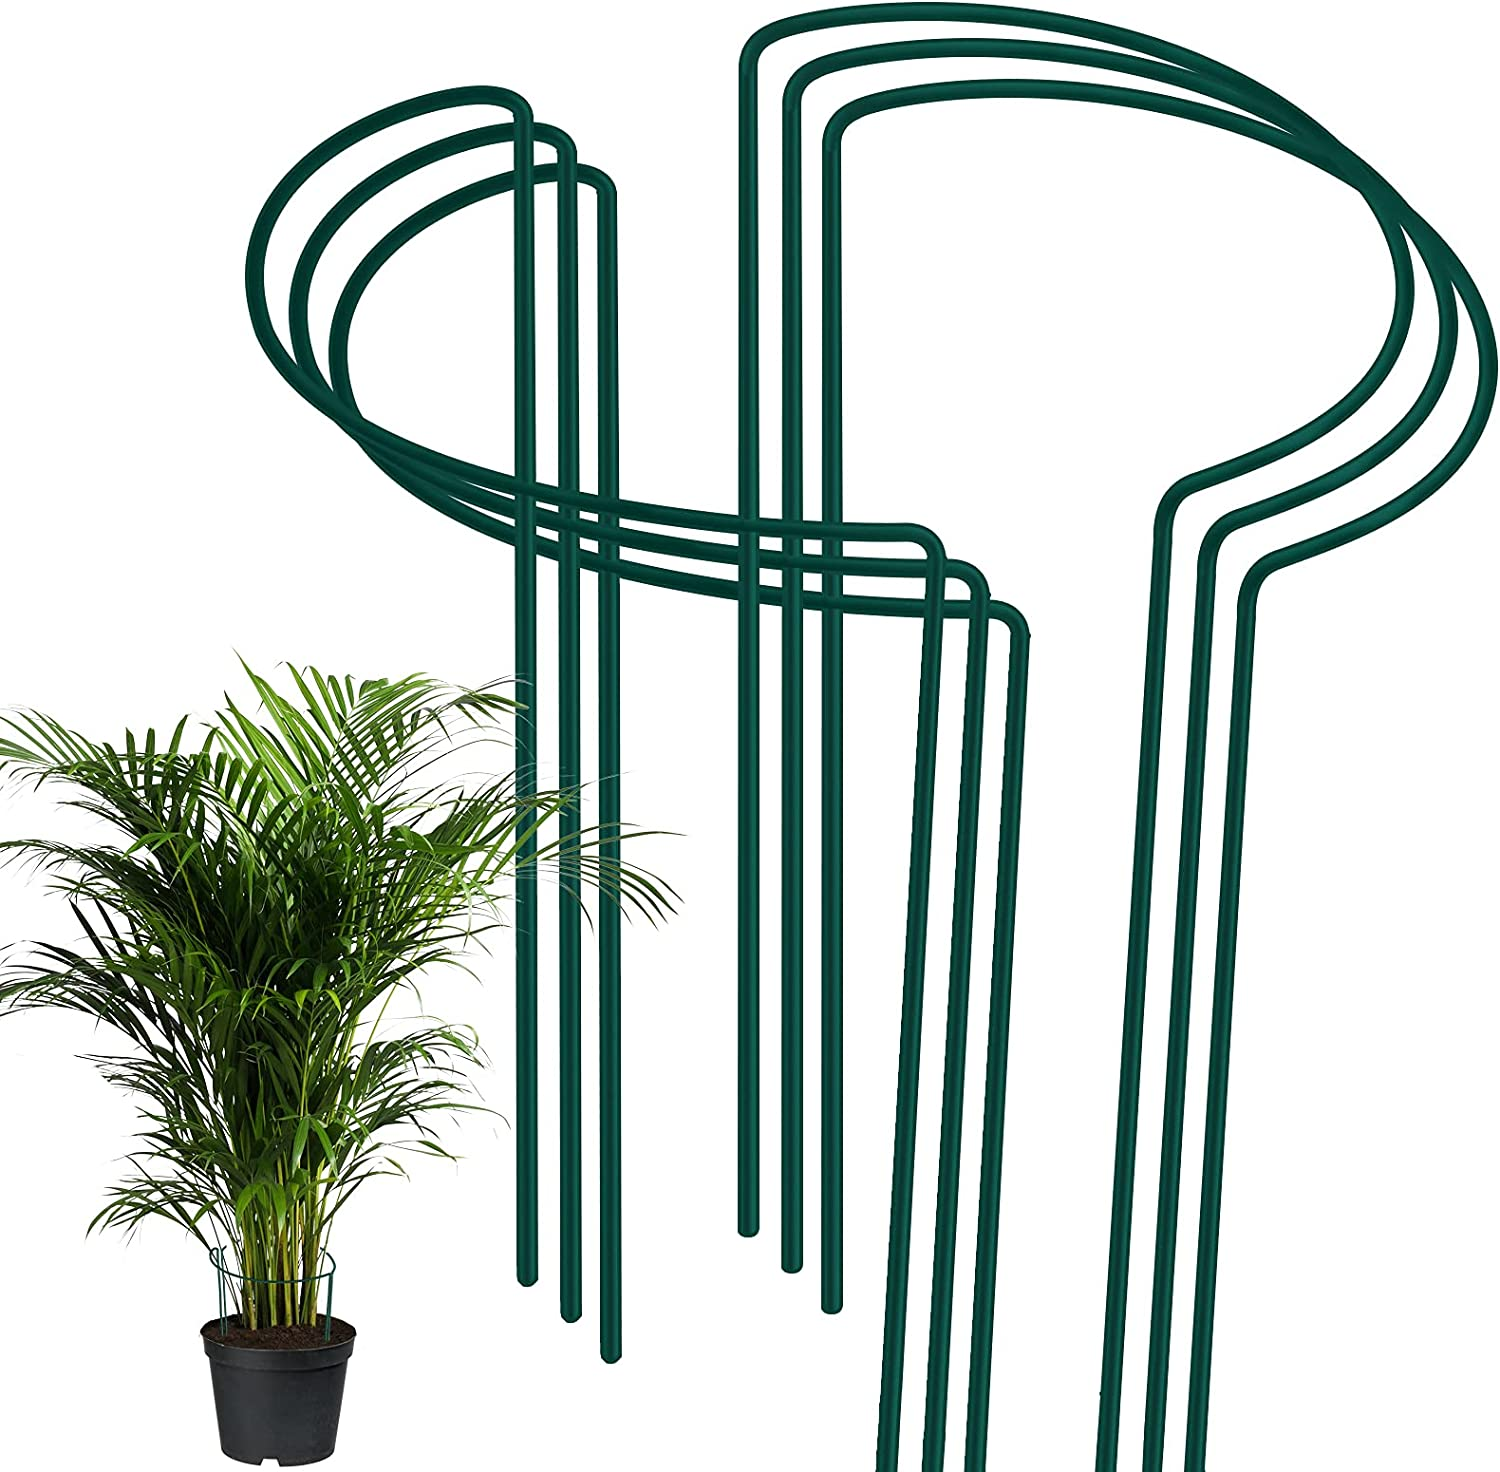 FEED GARDEN Max 71% OFF Popular brand 6 Pack Plant Stak Stakes Support Garden Metal